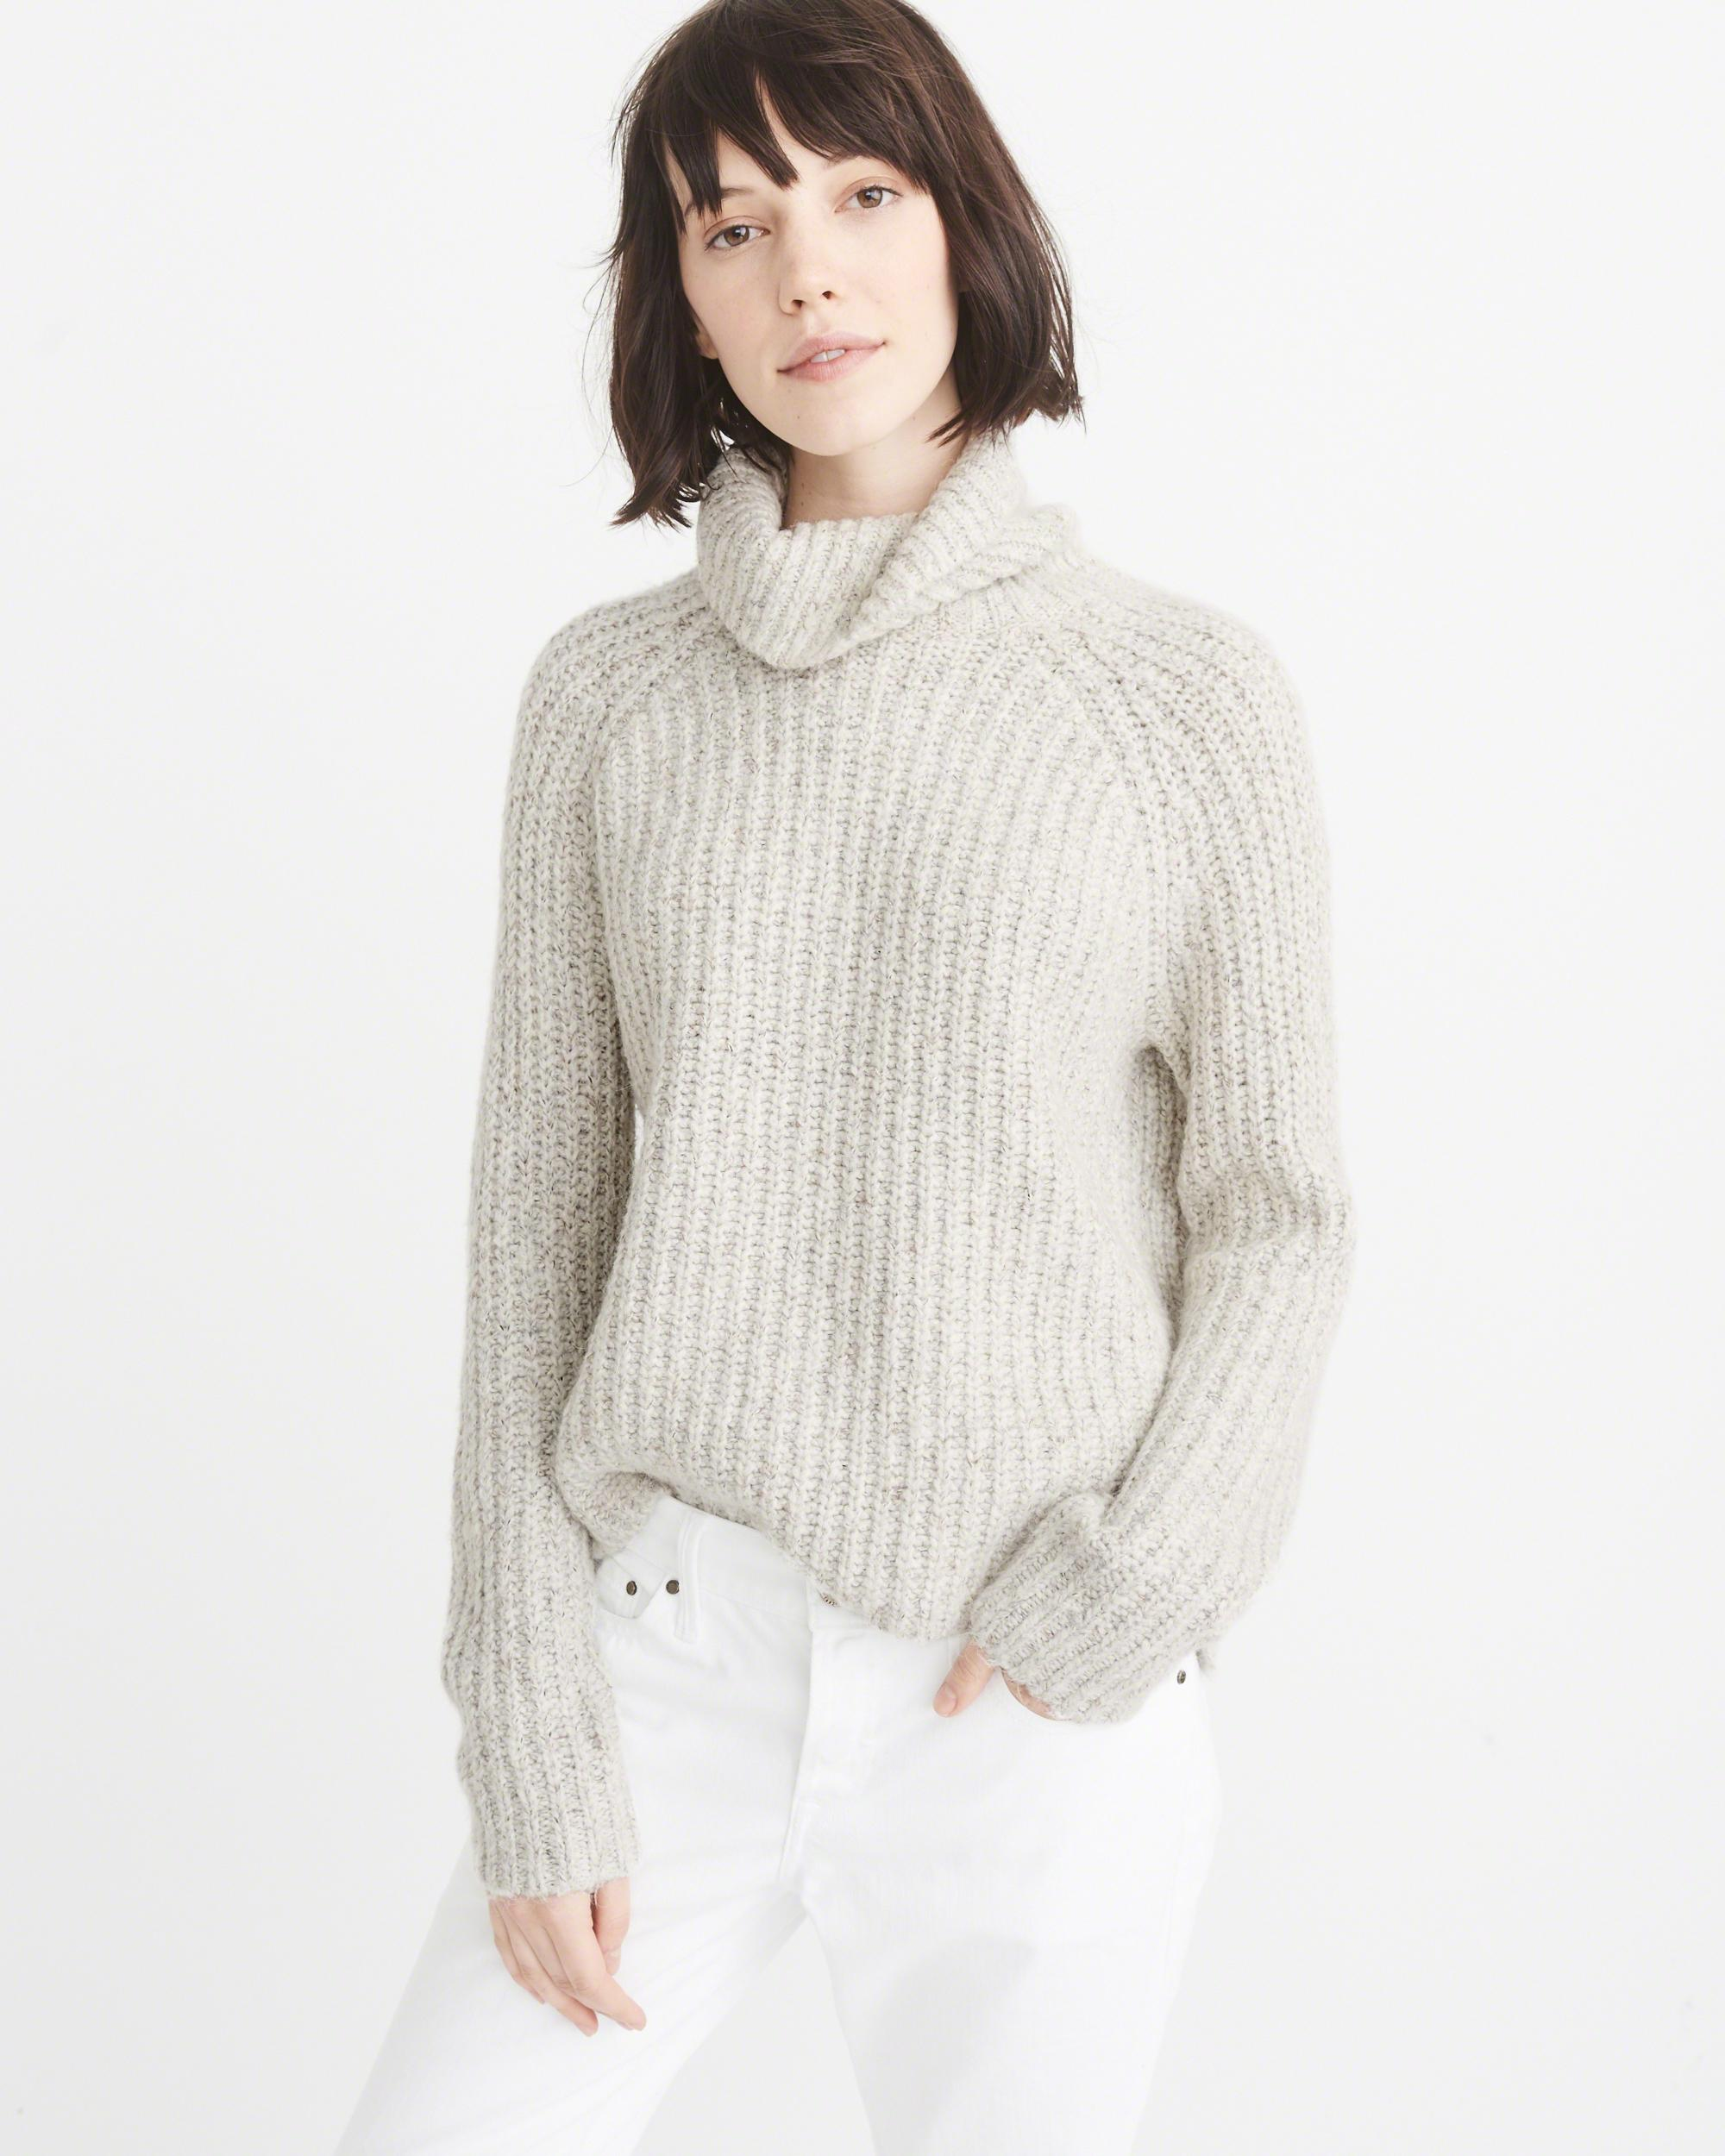 Abercrombie & fitch Shaker Turtleneck Sweater Exchange Color ...